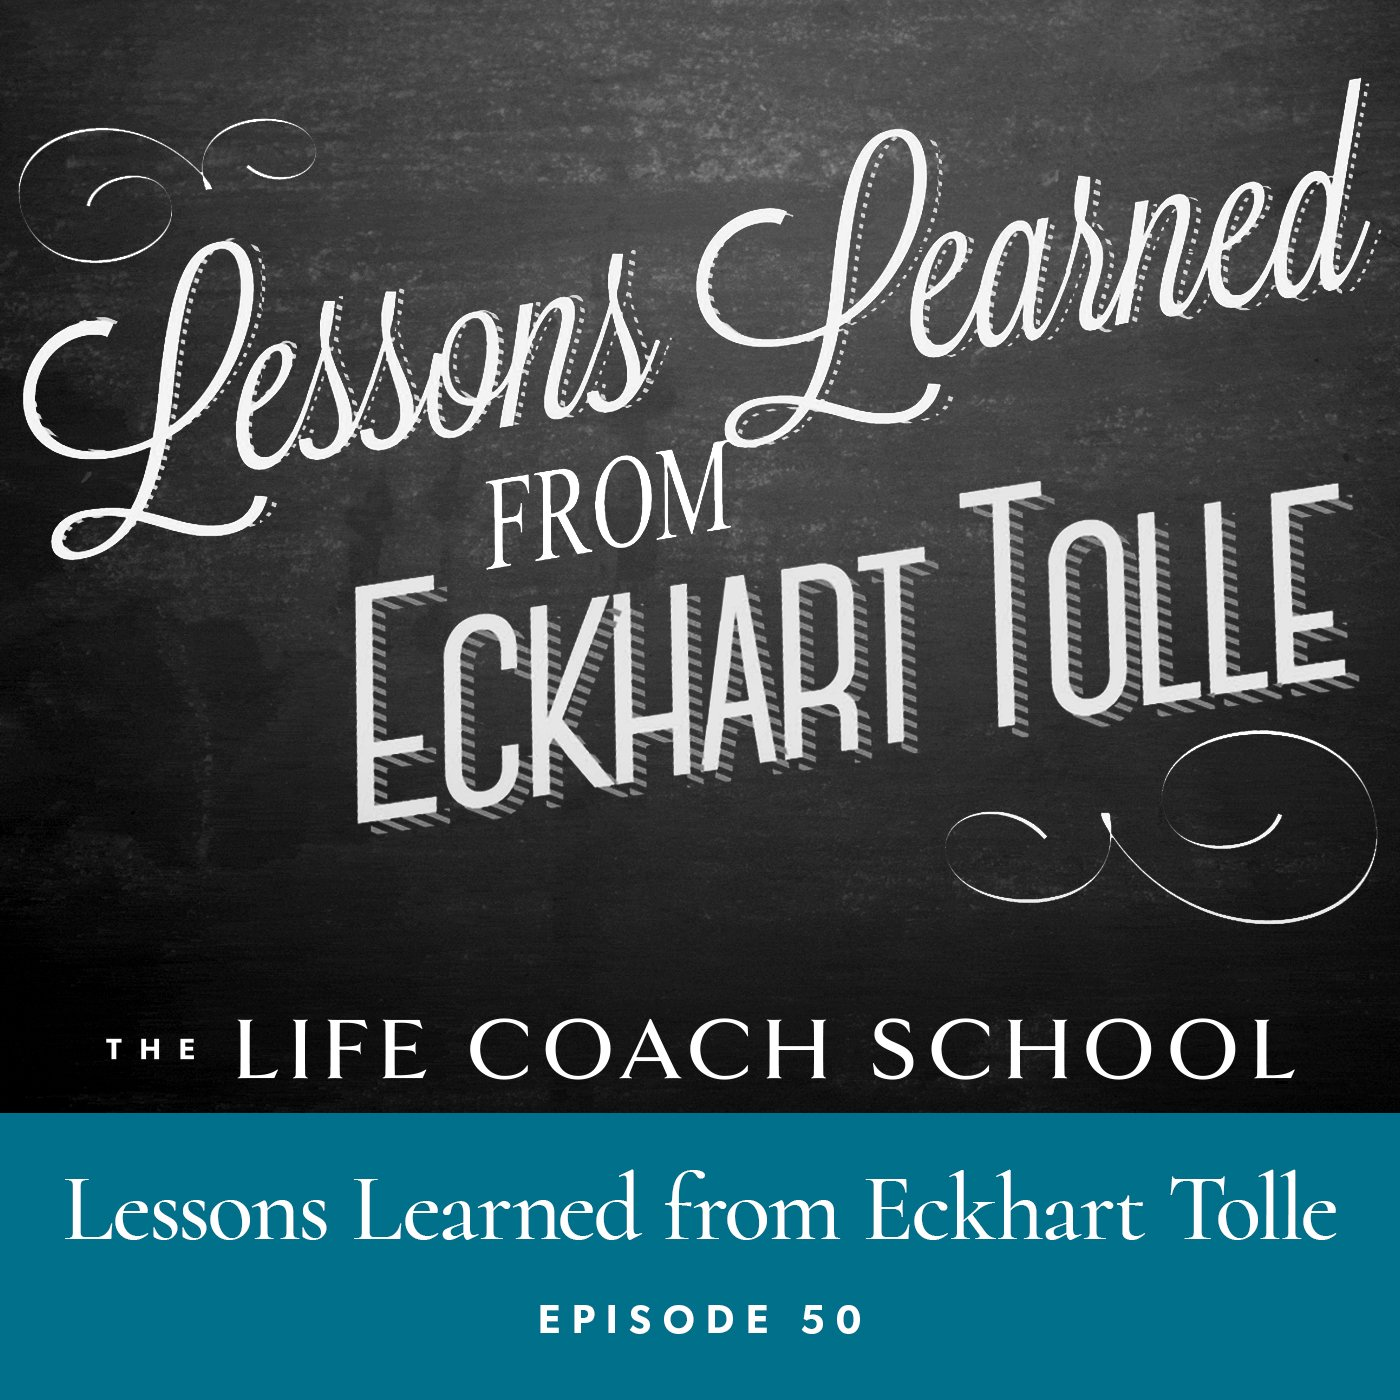 The Life Coach School Podcast | Episode 50 | Lessons Learned from Eckhart Tolle